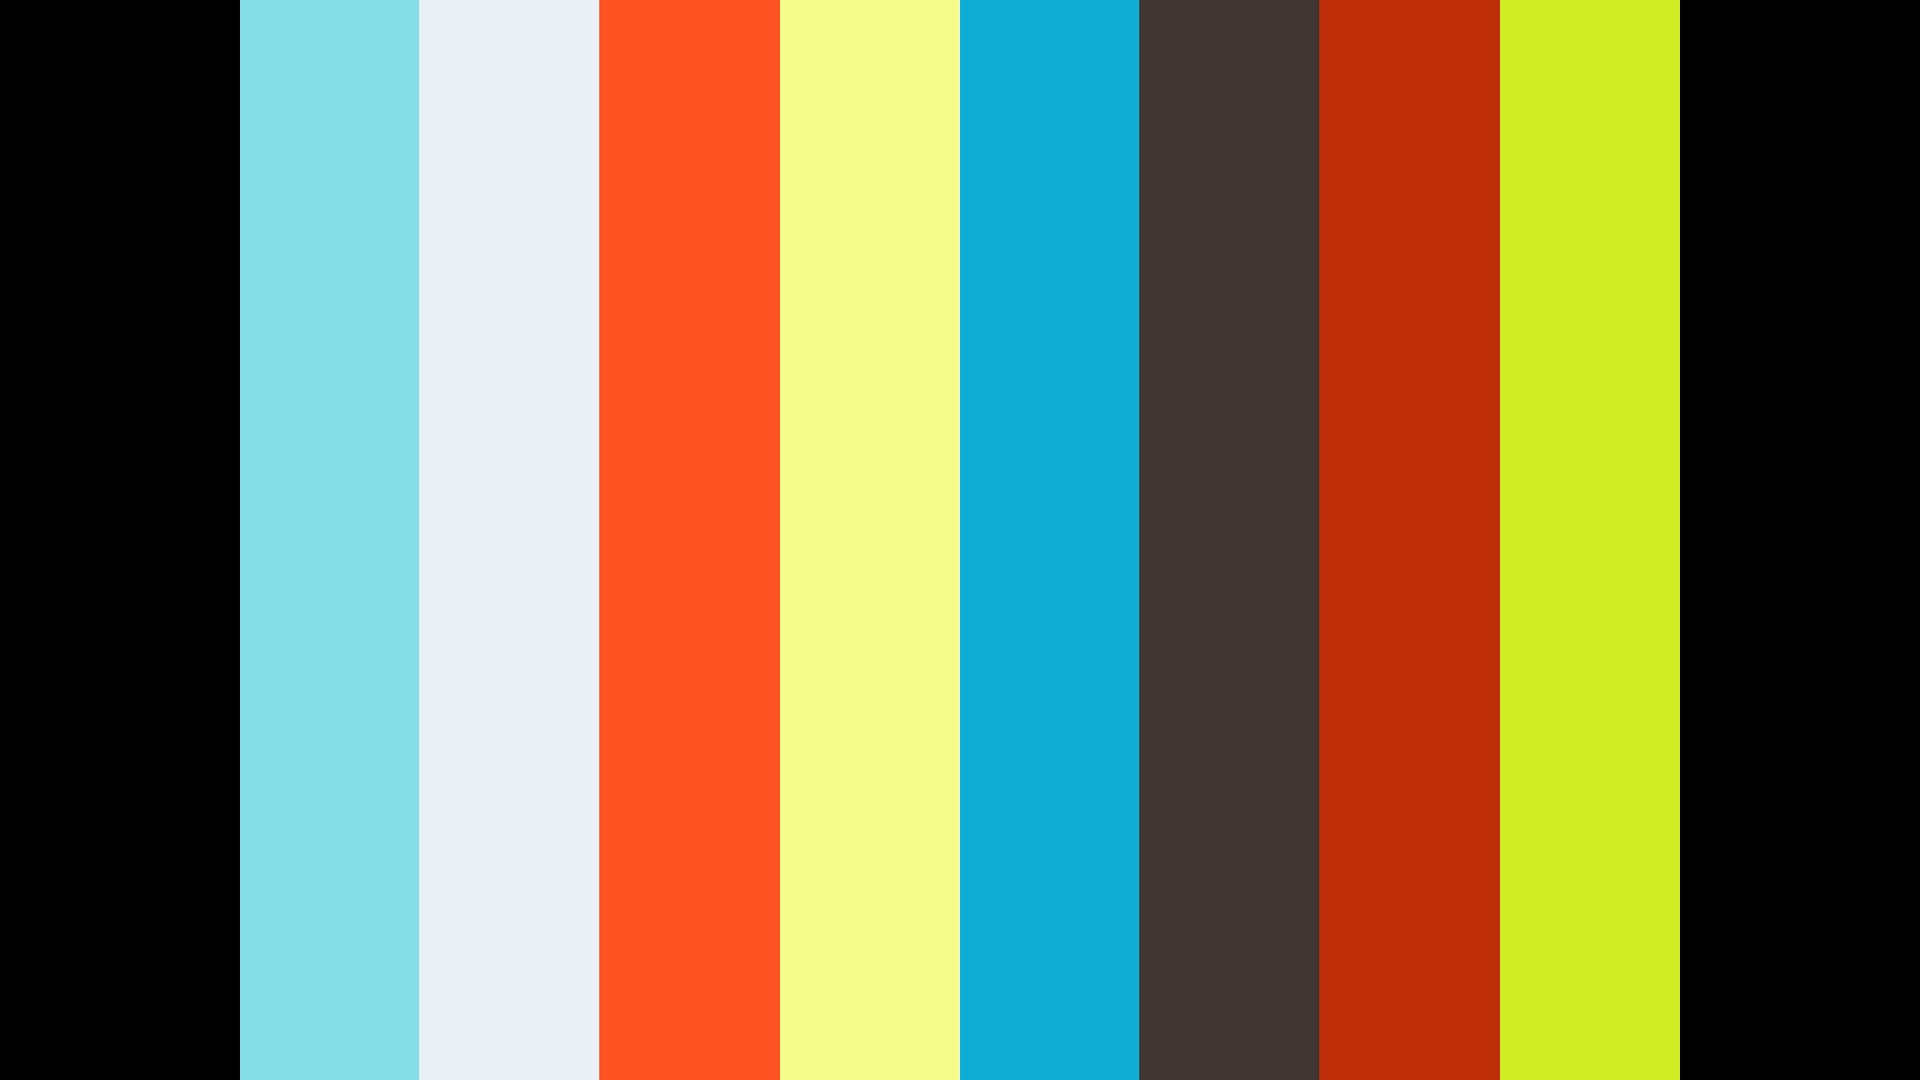 CatFace Machinima